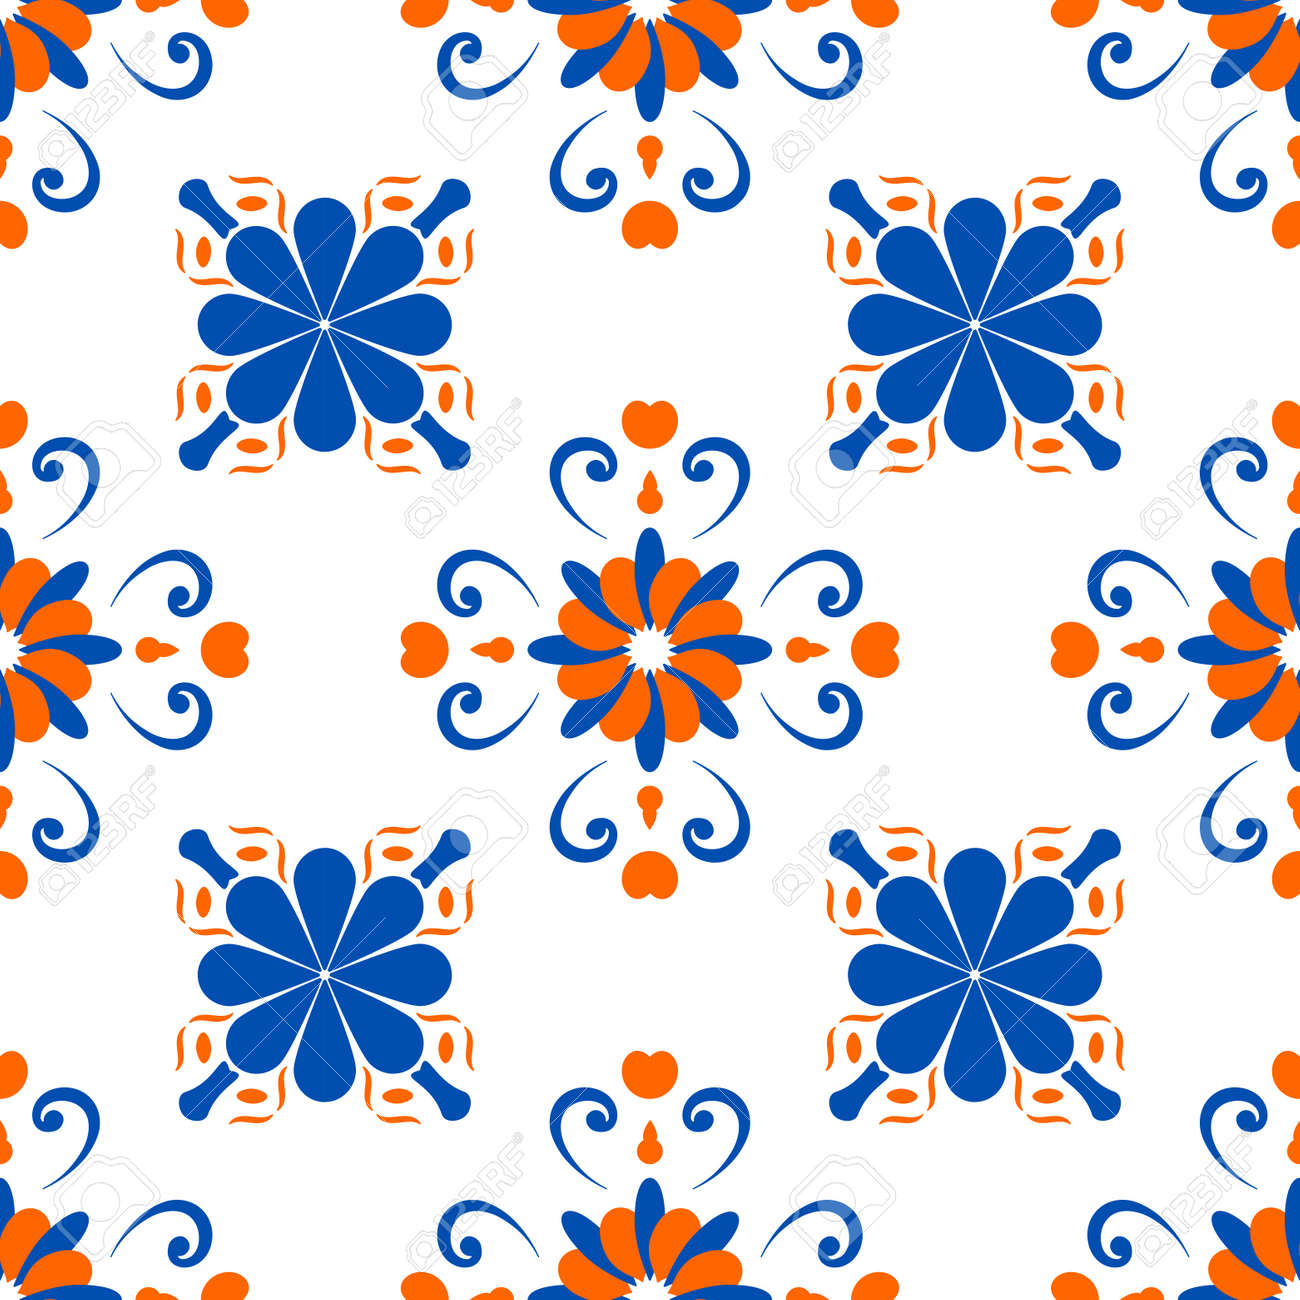 An abstract pattern in the style of a peronda tile, repeated on a grid. Suitable for backdrops, wallpapers, printed matter, wrapping paper, ceramic fill. Vector illustration. - 173016047